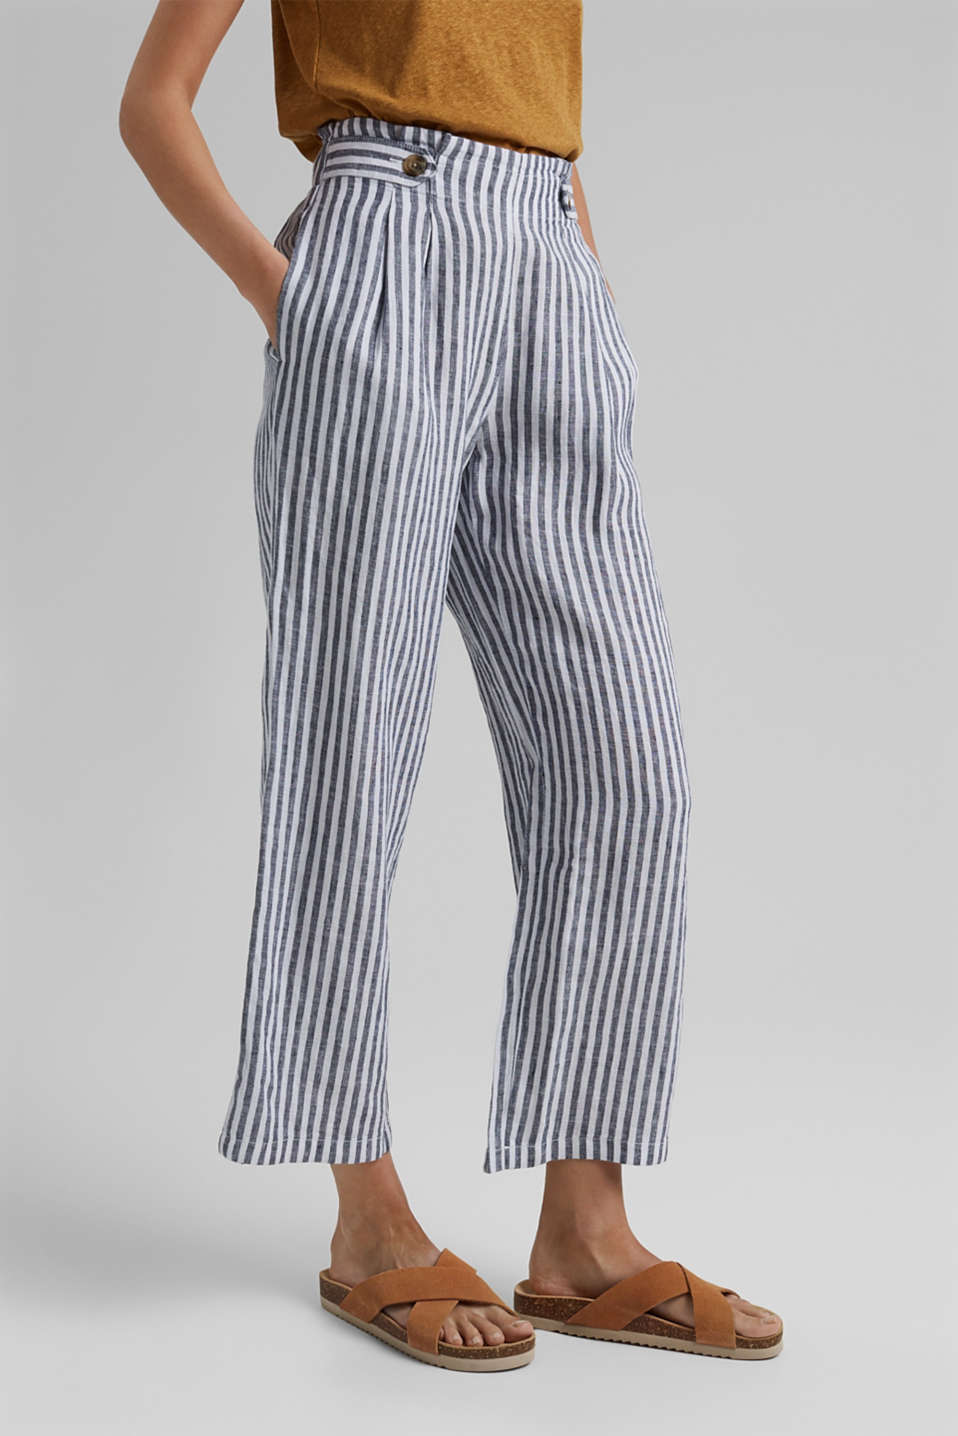 Esprit - Made of 100% linen: striped culottes